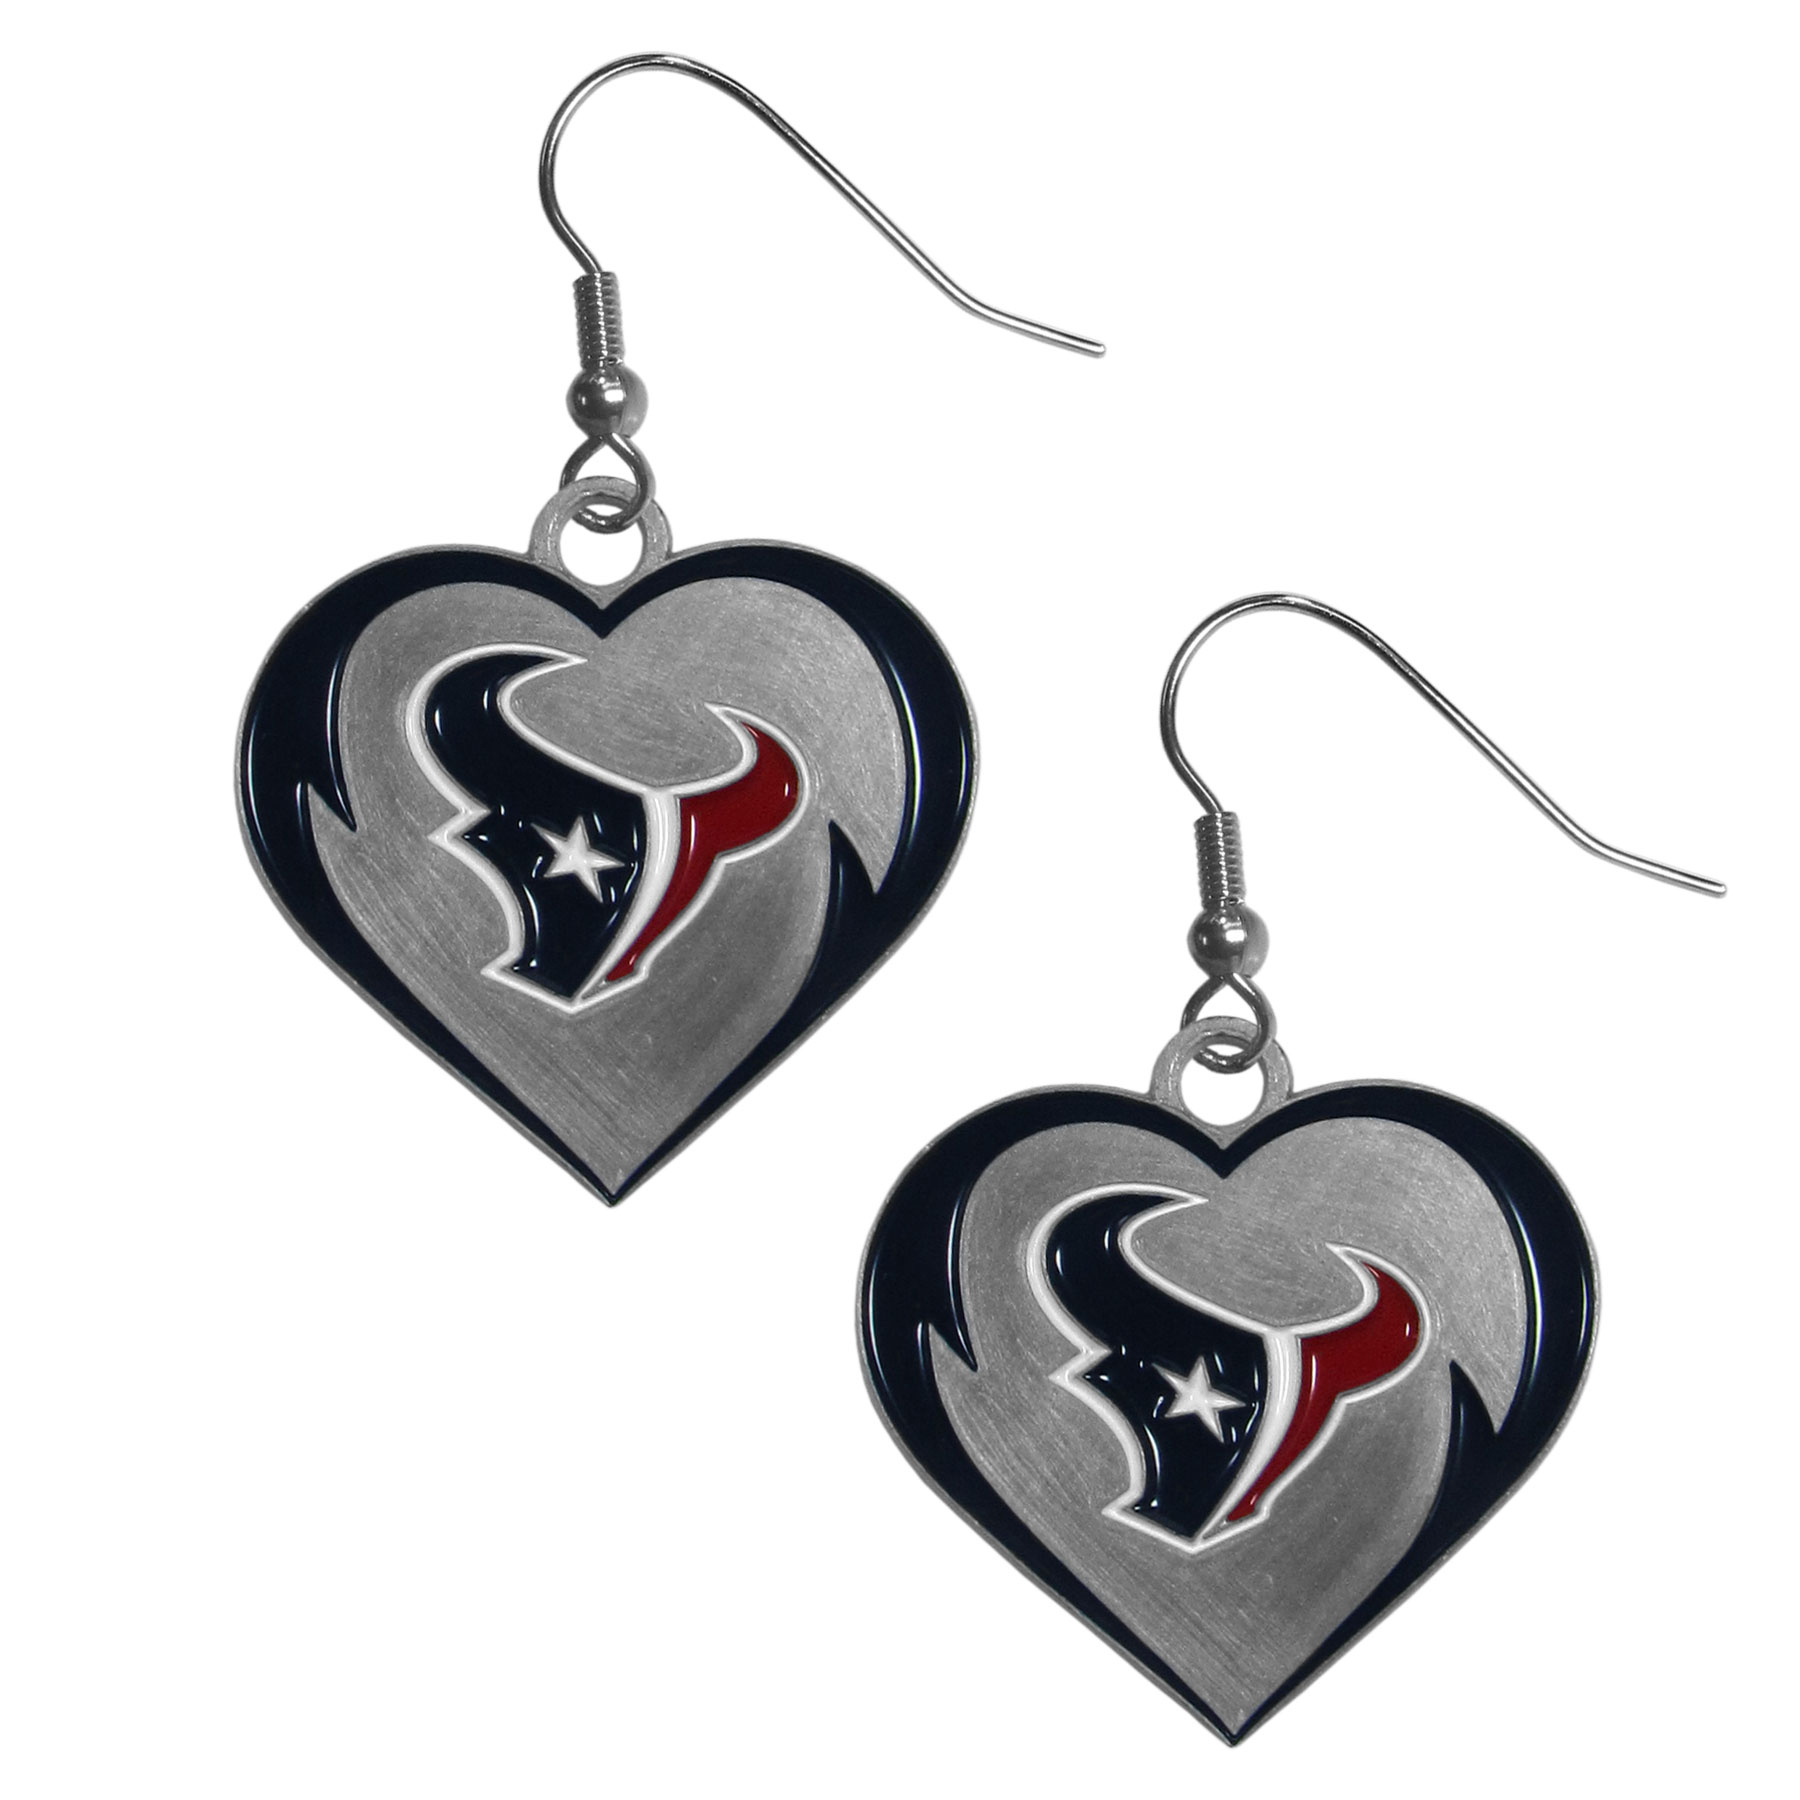 Siskiyou NHL Arizona Coyotes Chrome Dangle Earrings